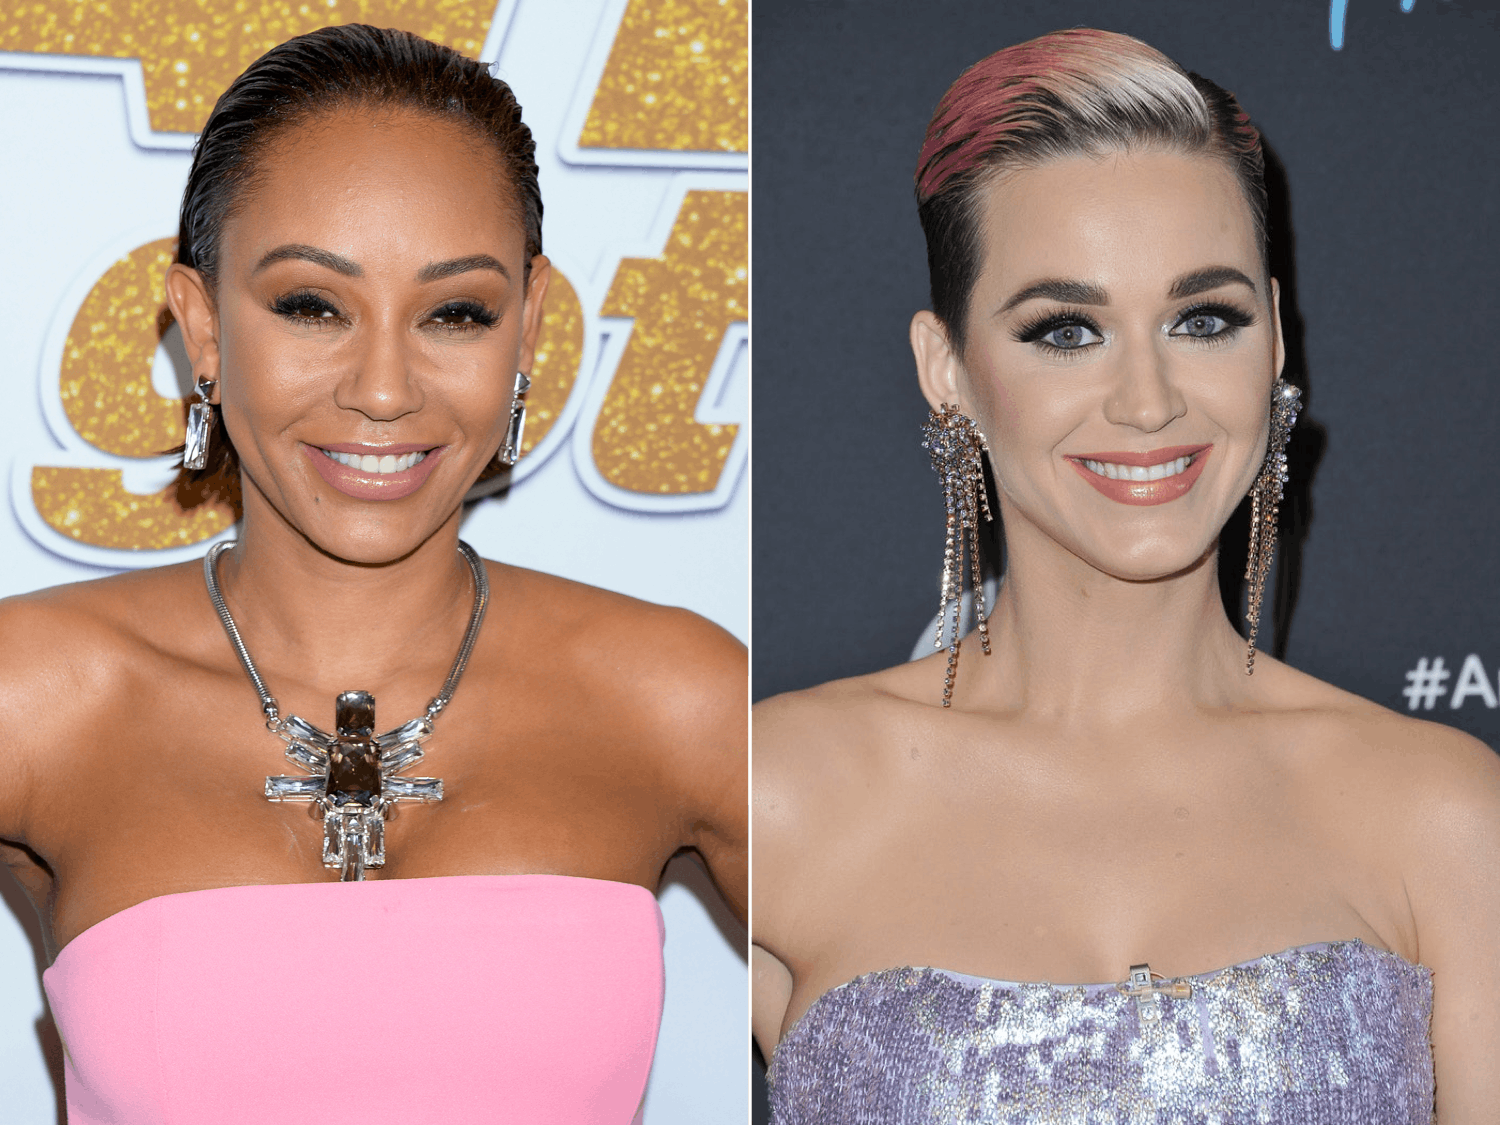 Who is katy perry dating in august 2019